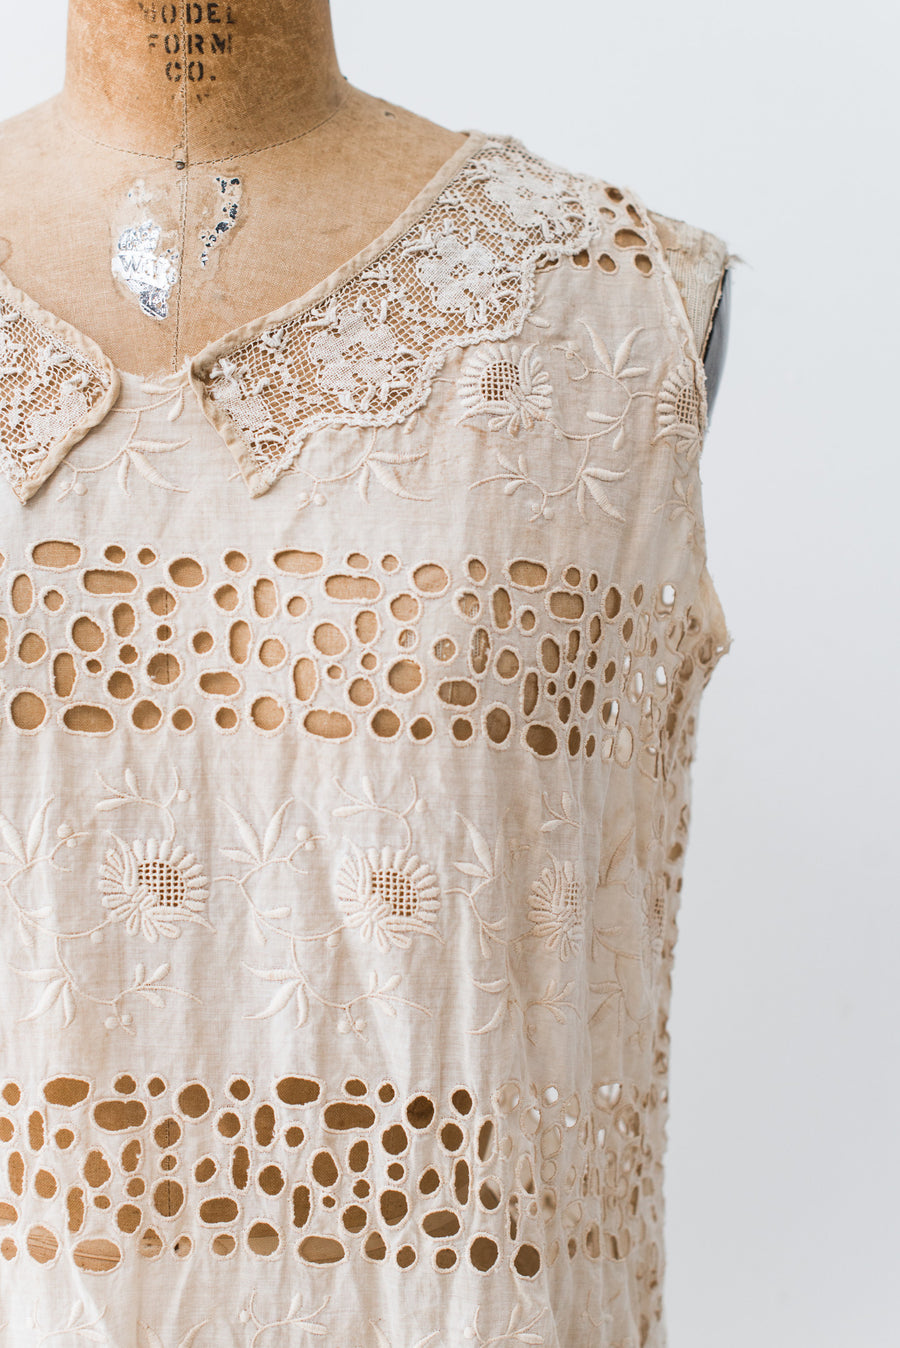 1920s Embroidered Muslin Flapper Dress - S